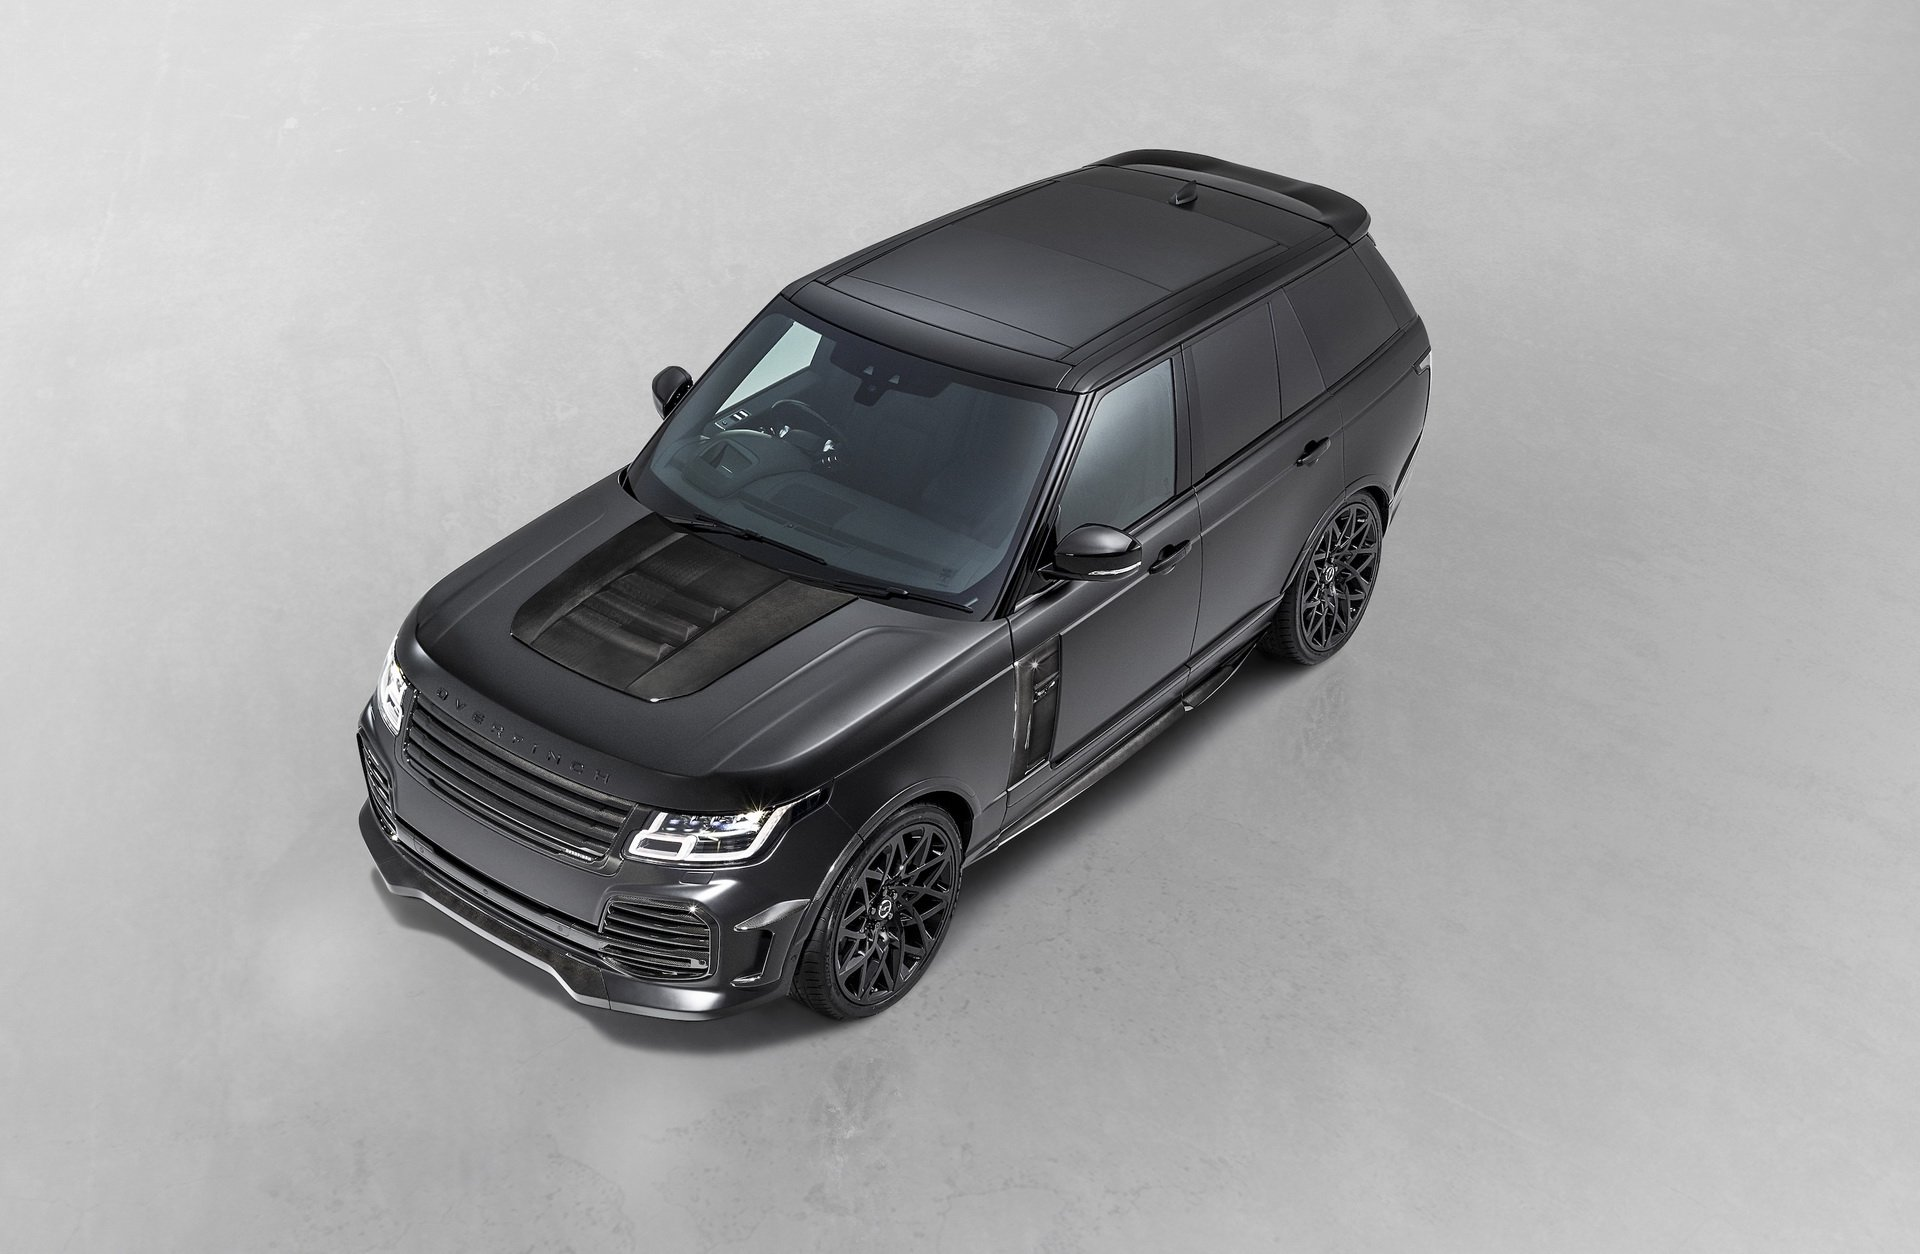 Range-Rover-Velocity-by-Overfinch-3